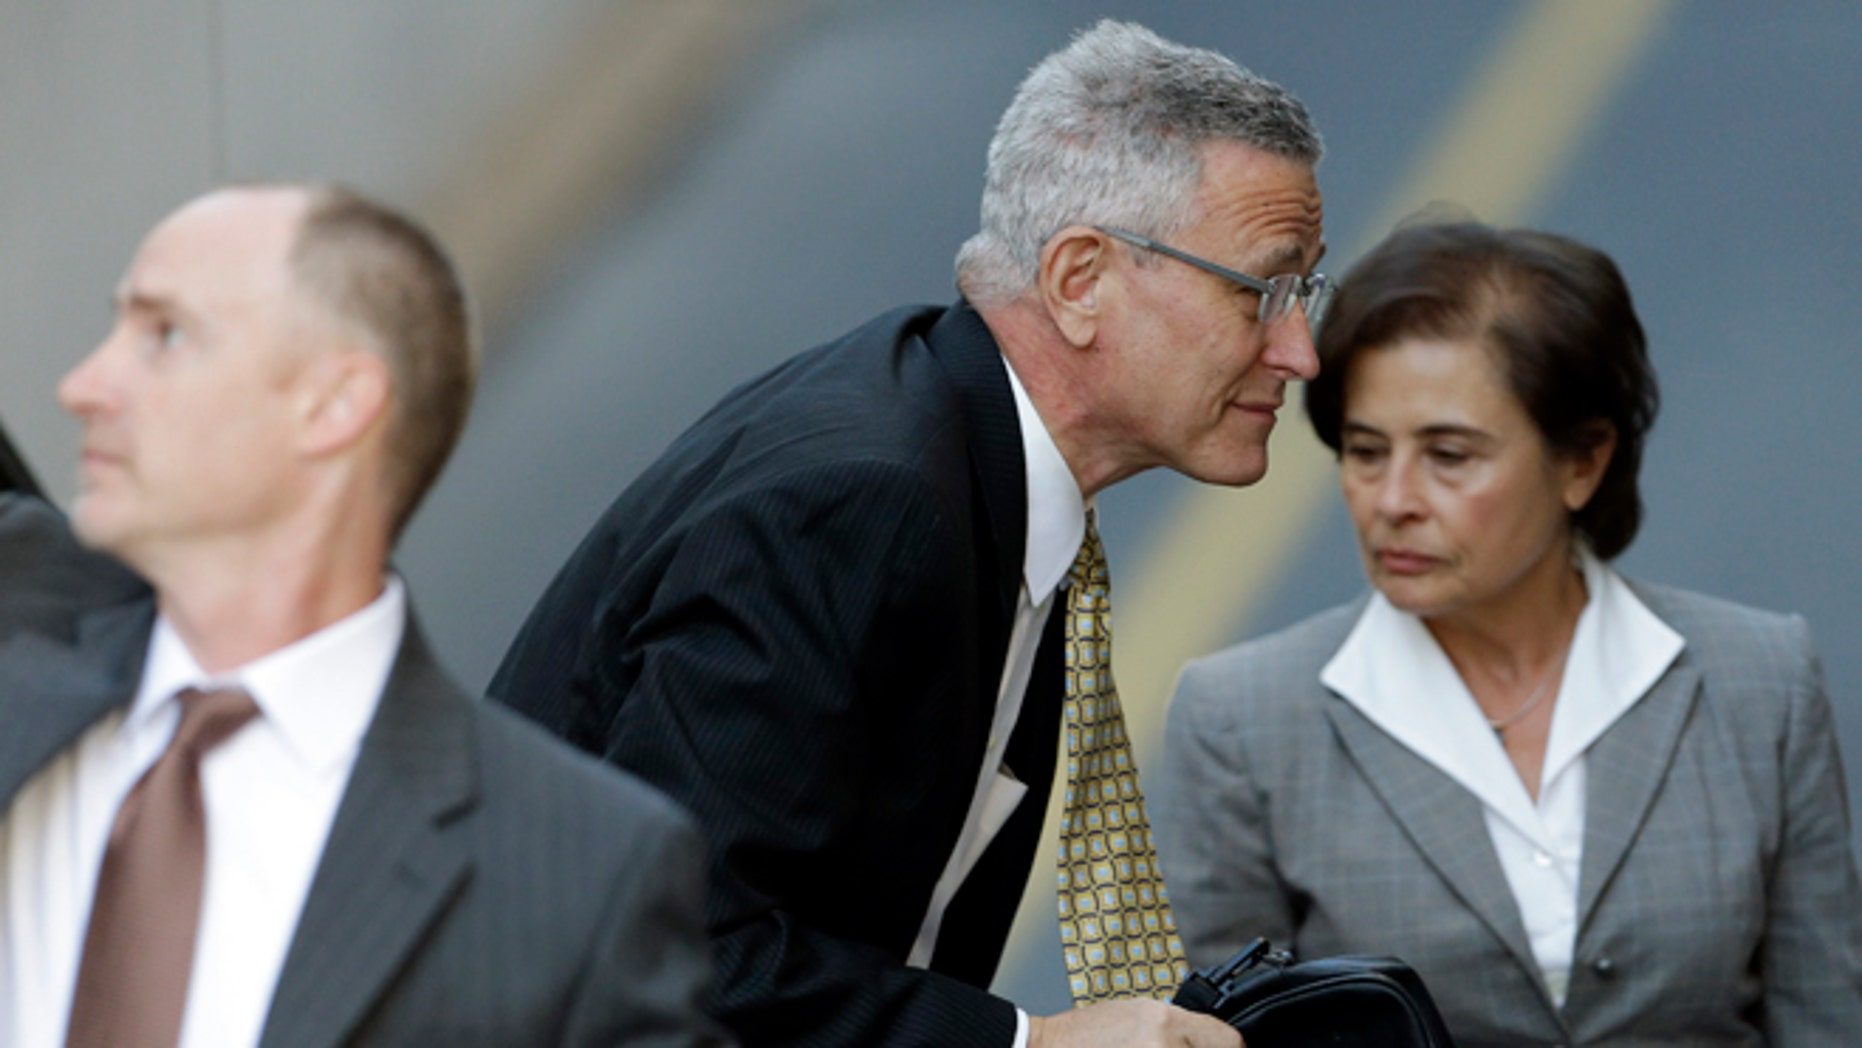 July 29, 2013: Former Penn State director of athletics Tim Curley enters the Dauphin County Courthouse in Harrisburg, Pa. Curley, Graham Spanier and Gary Schultz are to go before a judge Monday to determine whether the three must face trial on charges they covered up an allegation that Jerry Sandusky was sexually preying on boys. (AP/Matt Rourke)